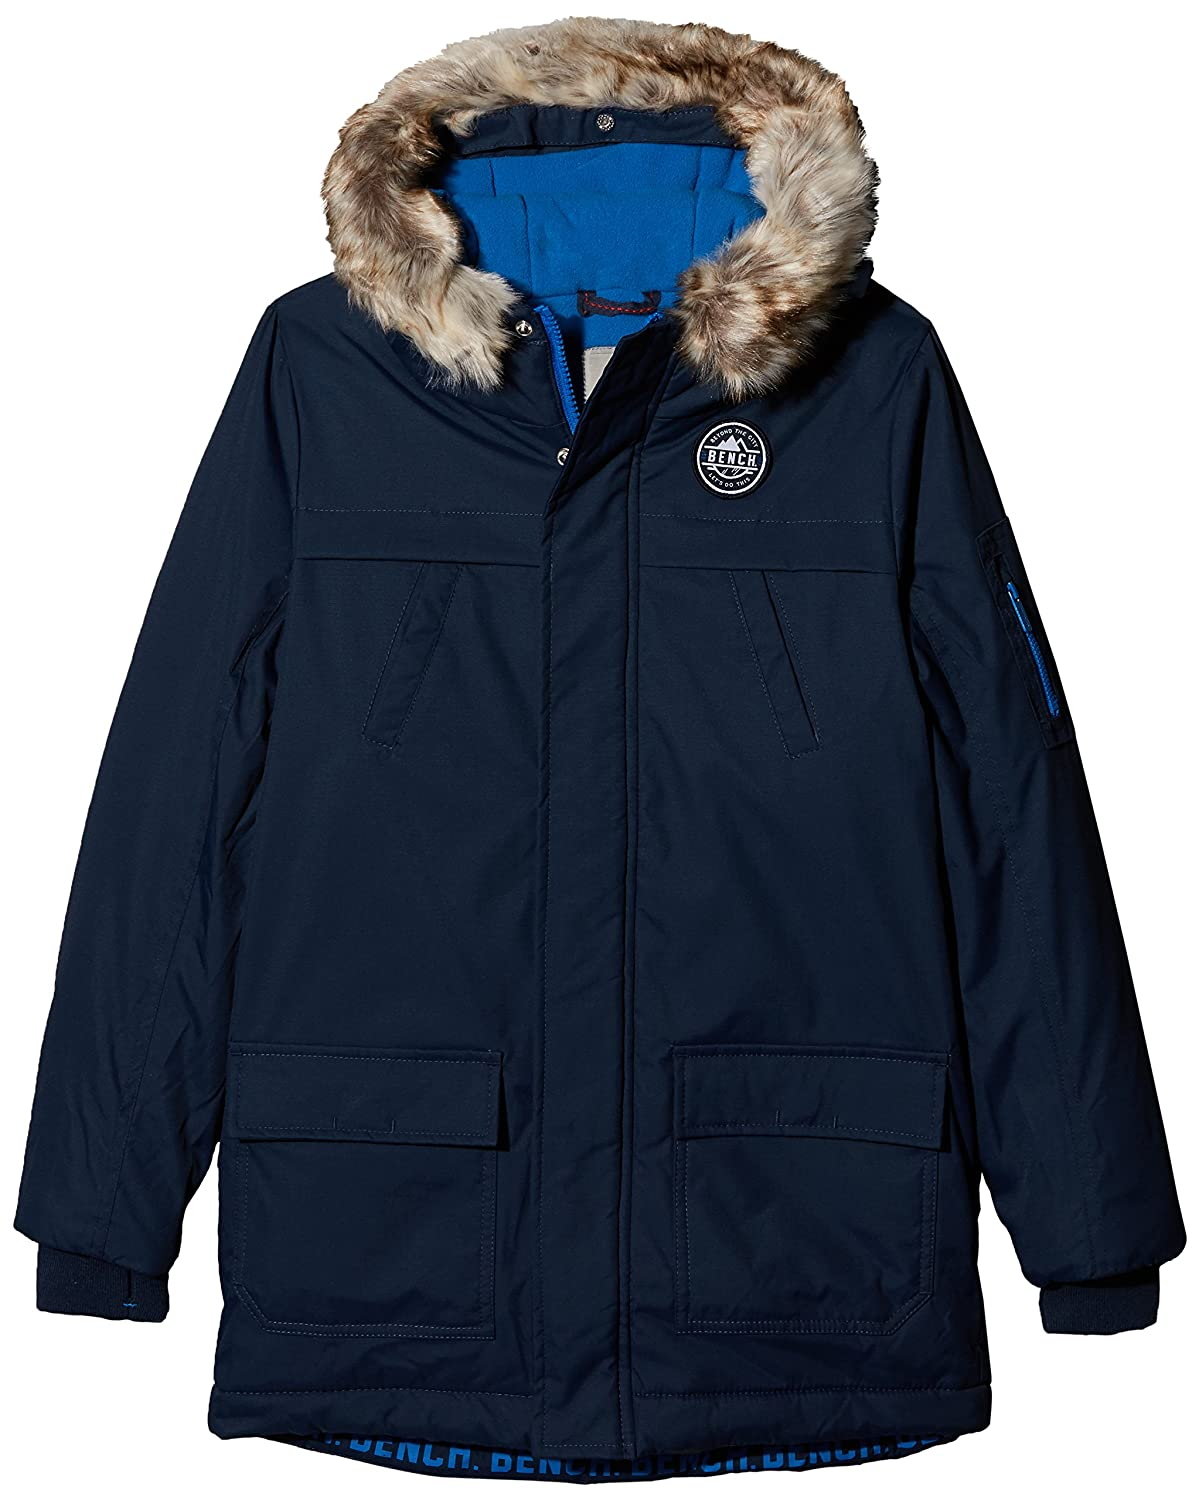 Bench Boy's Parka Coat Bench Boy' s Parka Coat BKBK001312